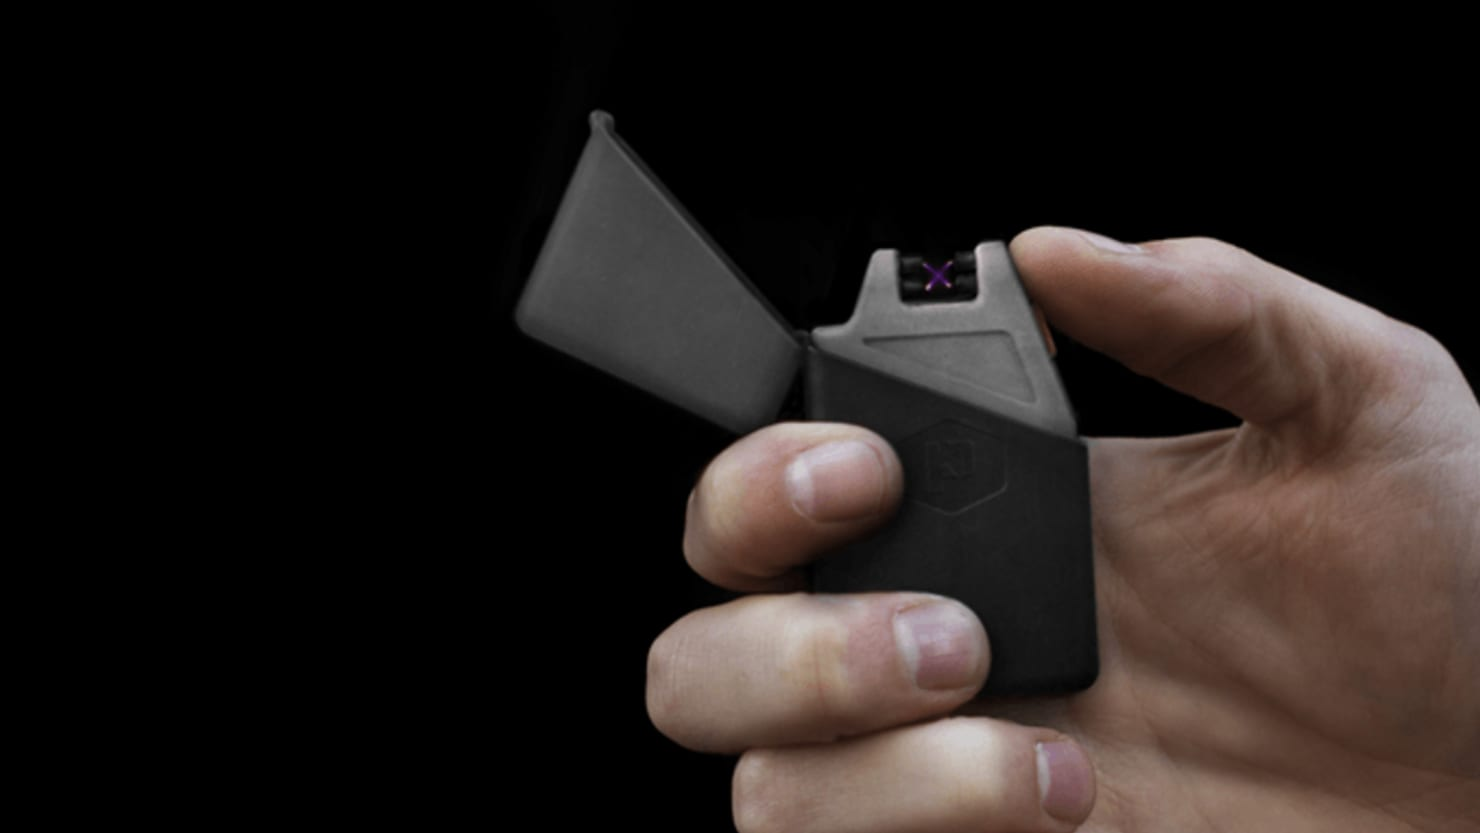 Light Up in Any Conditions With This Plasma Lighter And Flashlight